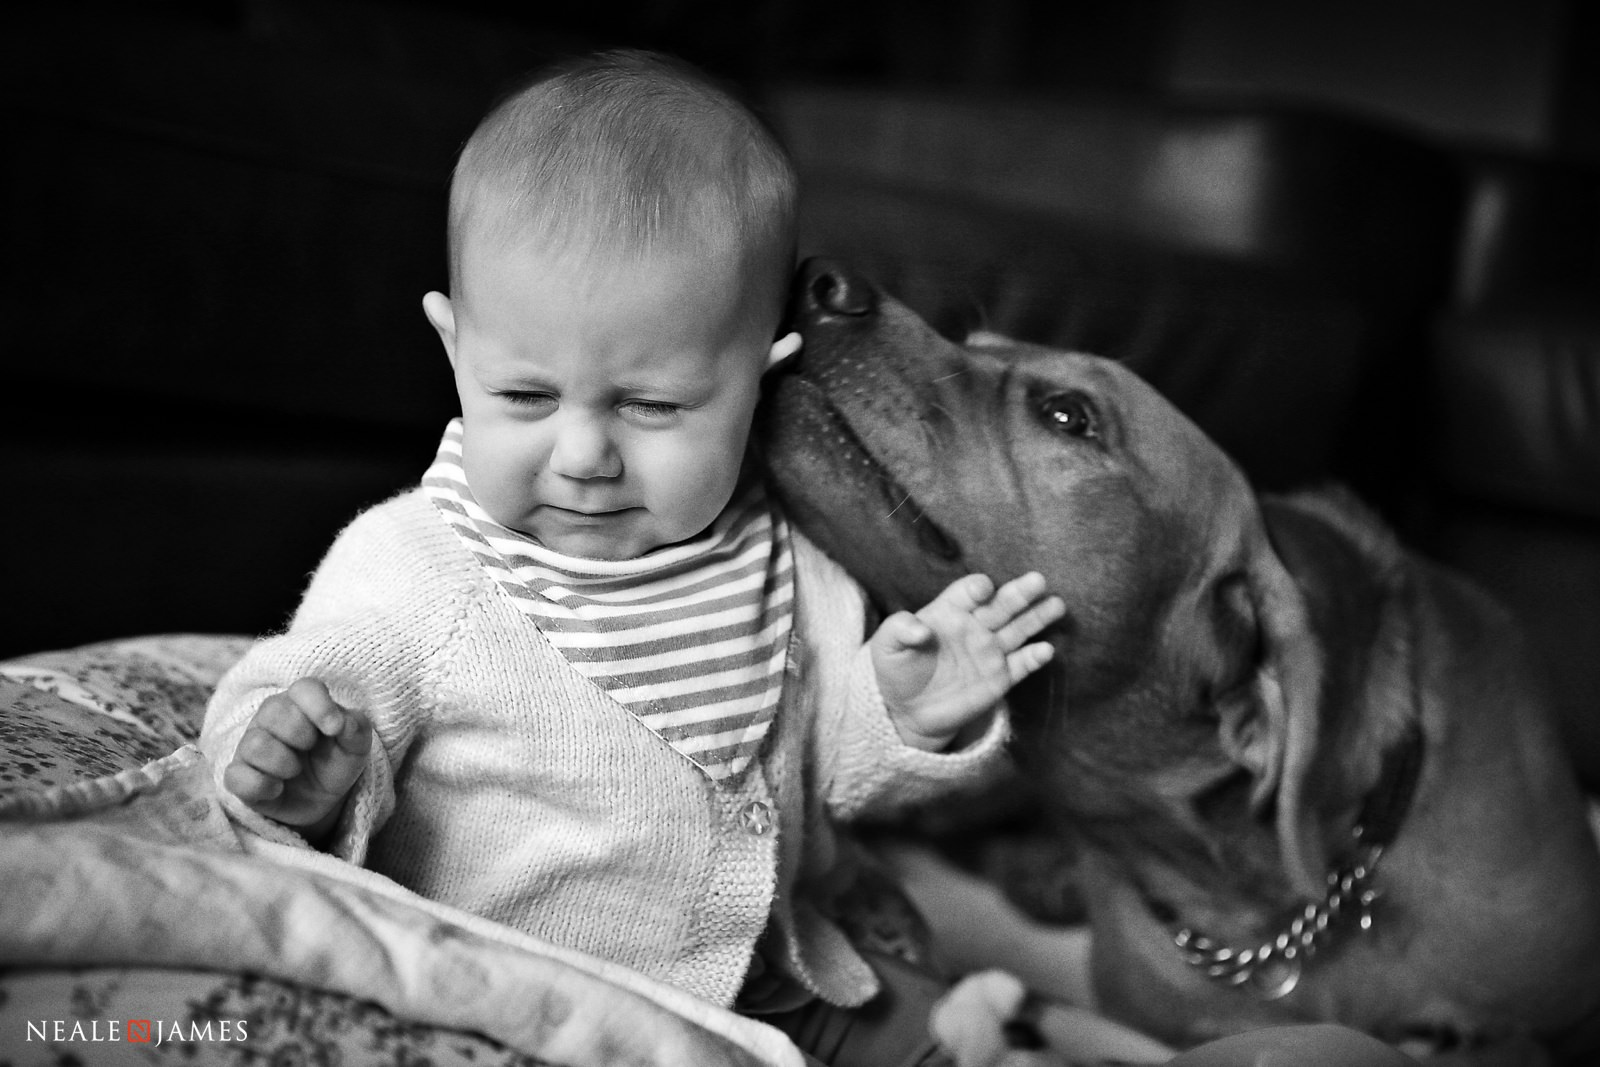 A picture of a baby being licked in the face by a playful dog